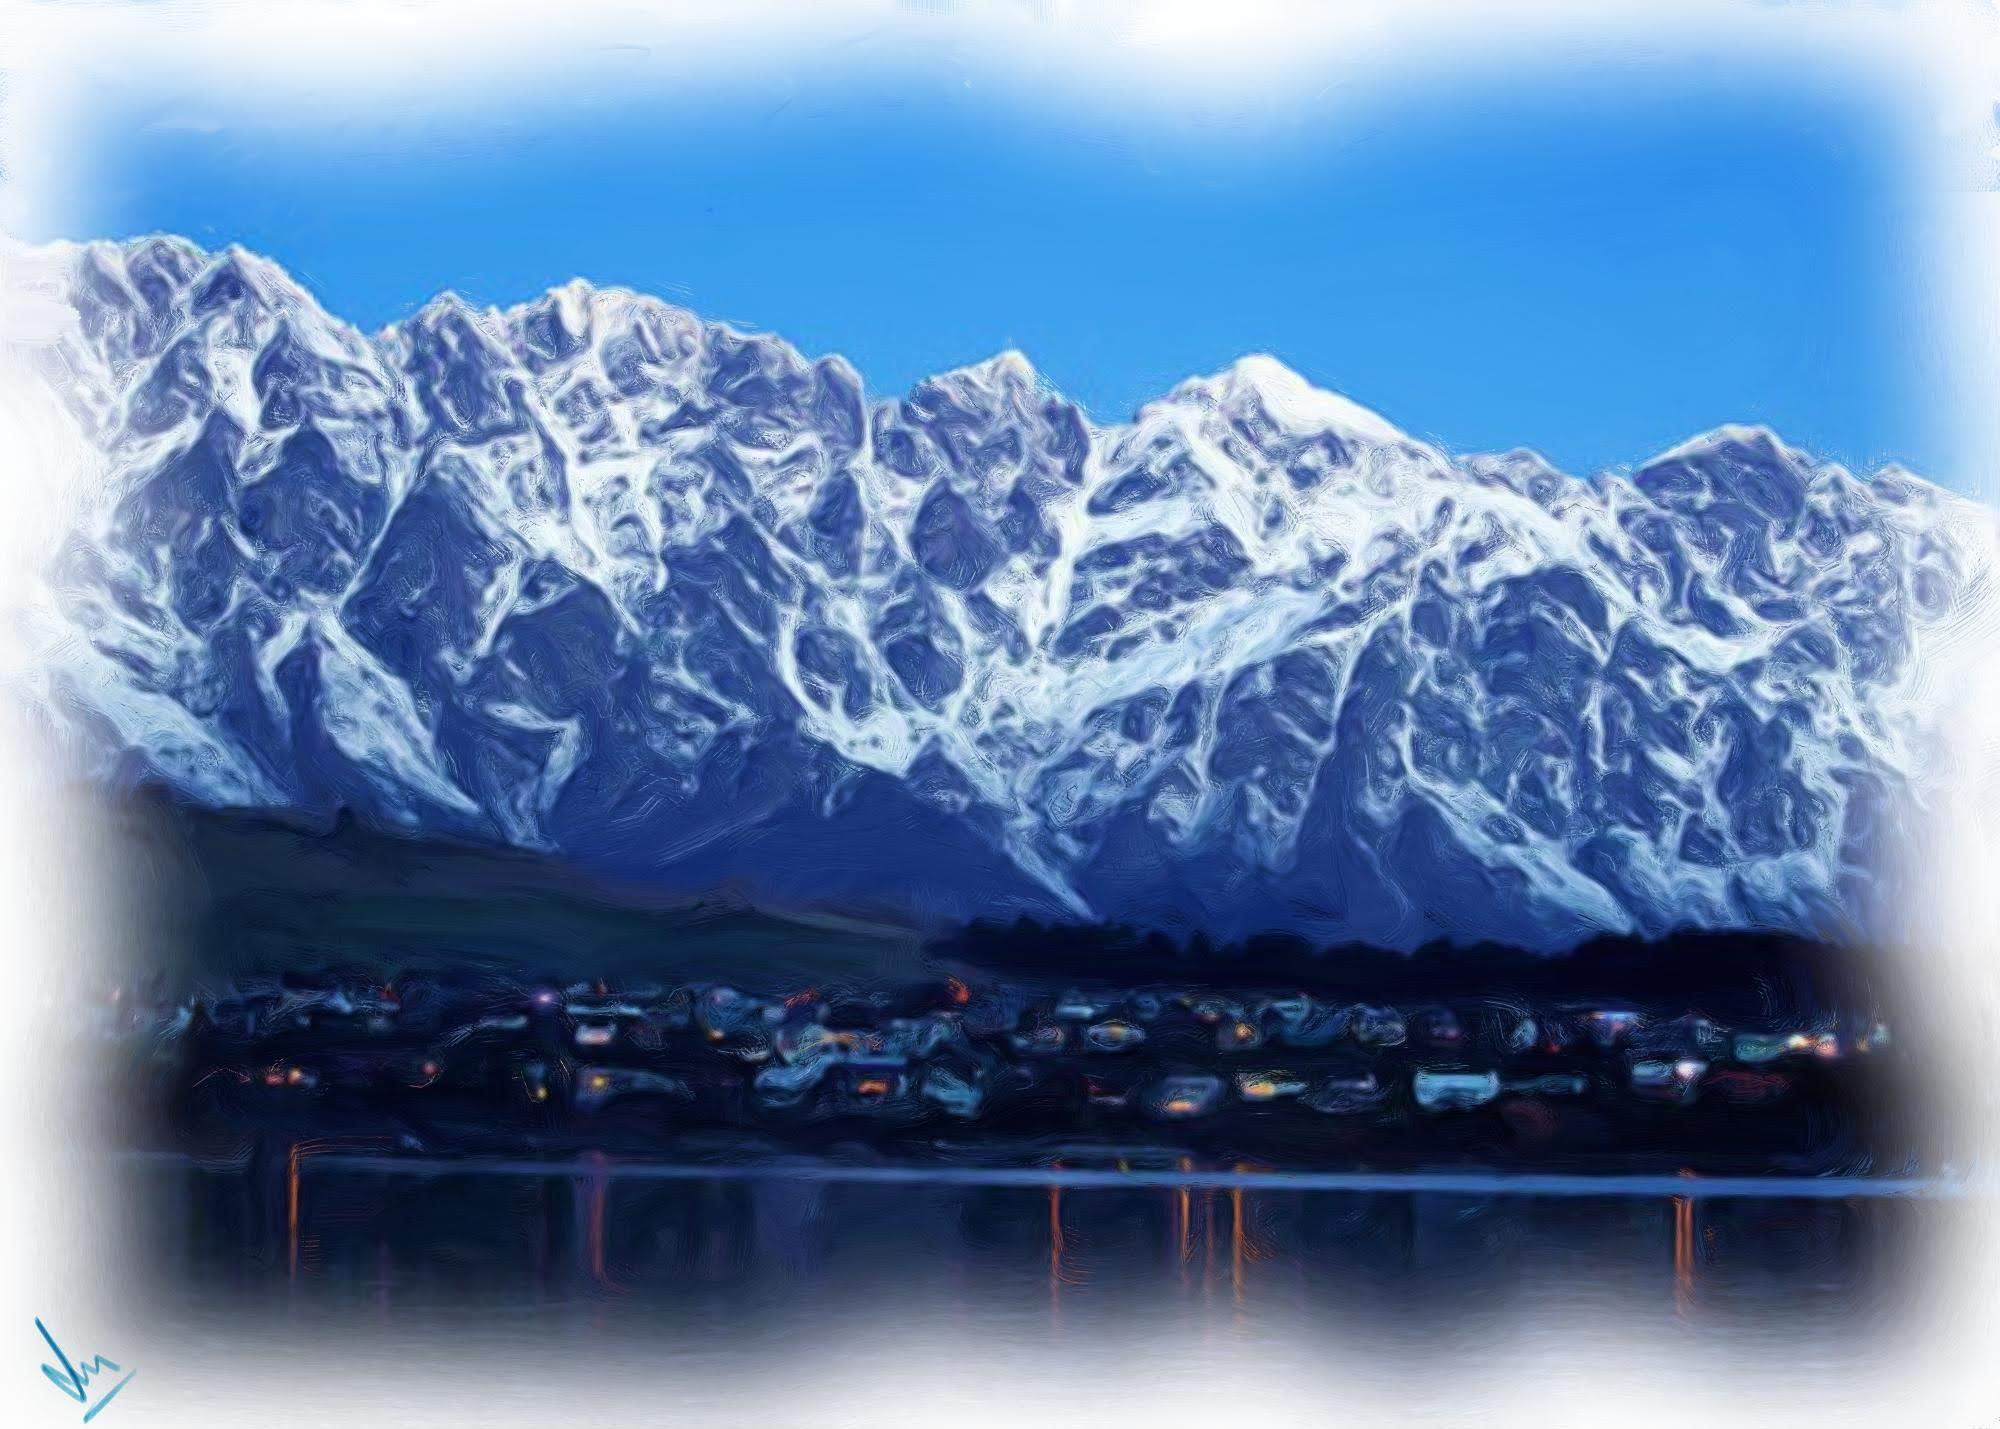 The Remarkables covered with snow in Winter - Digital Painting by Shaalyn Monteiro